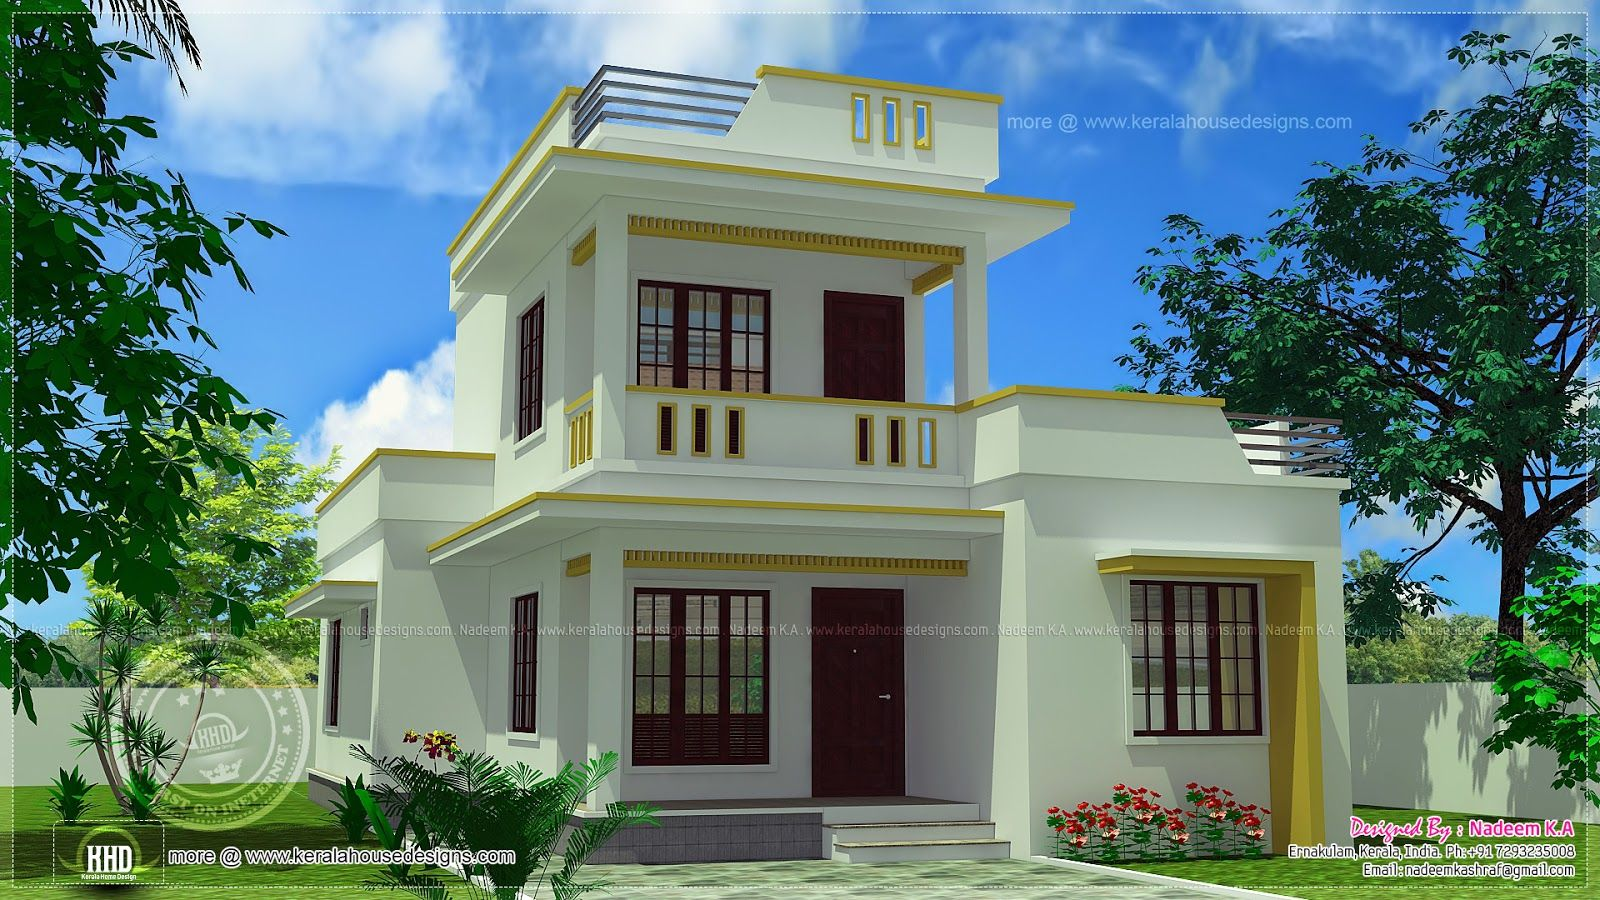 Roof home design feet kerala plans simple modern house for Simple modern house blueprints